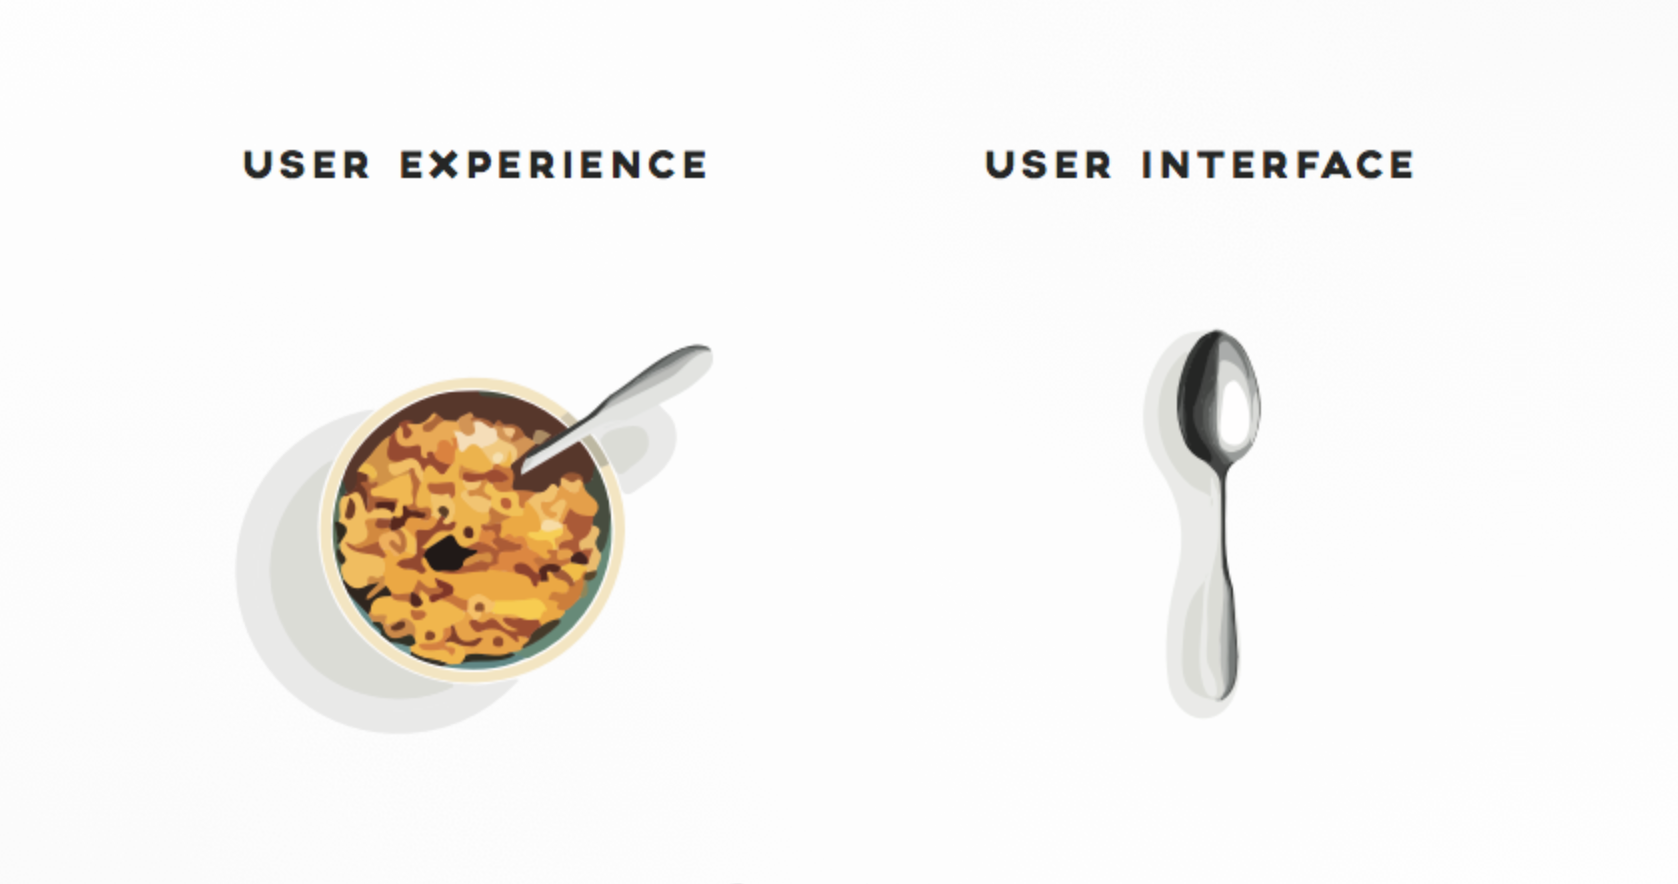 UX is not UI, the difference between UX and UI